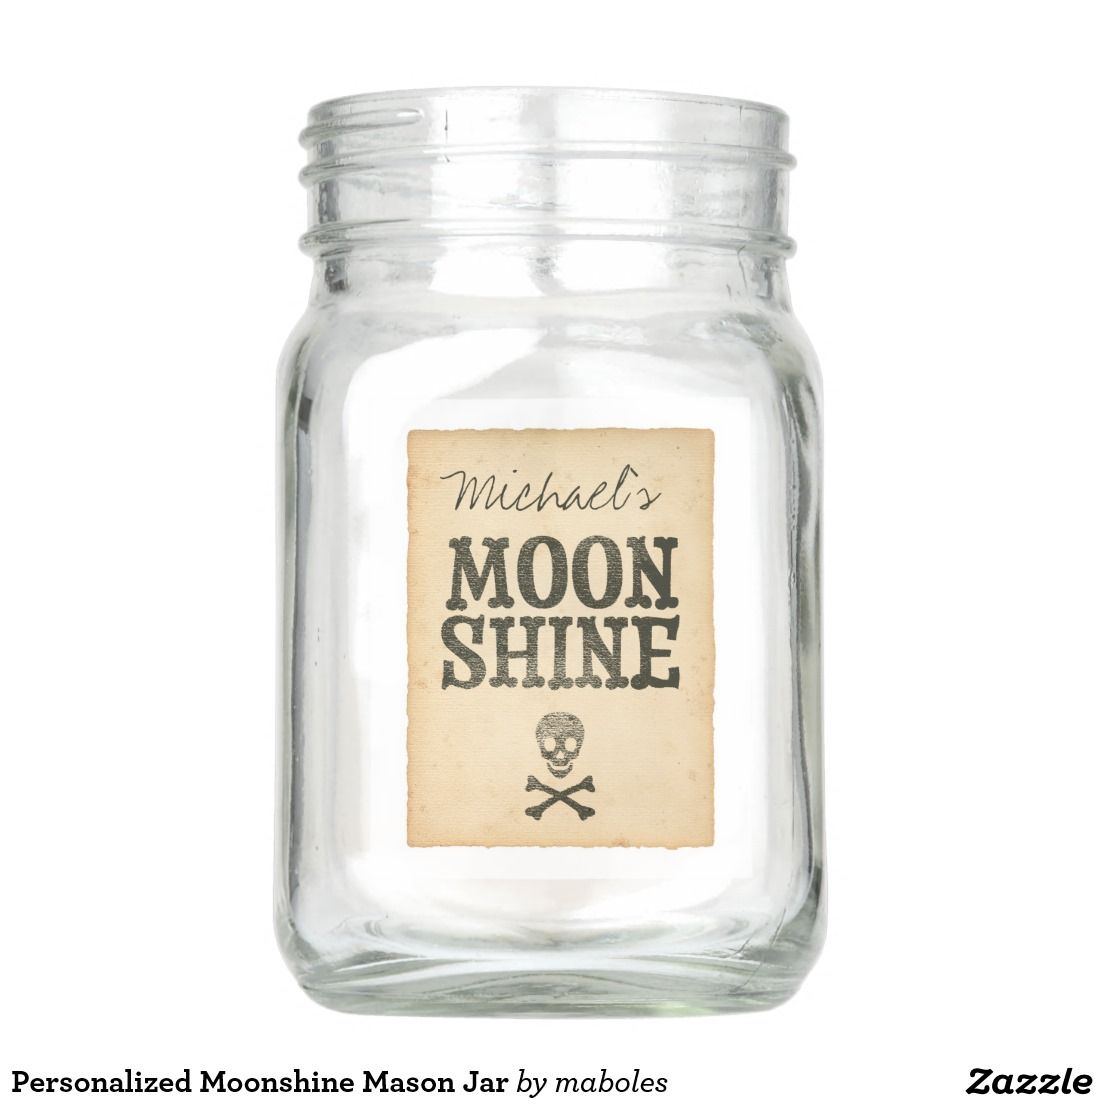 Personalized Moonshine Mason Jar | Mason Jars | Pinterest